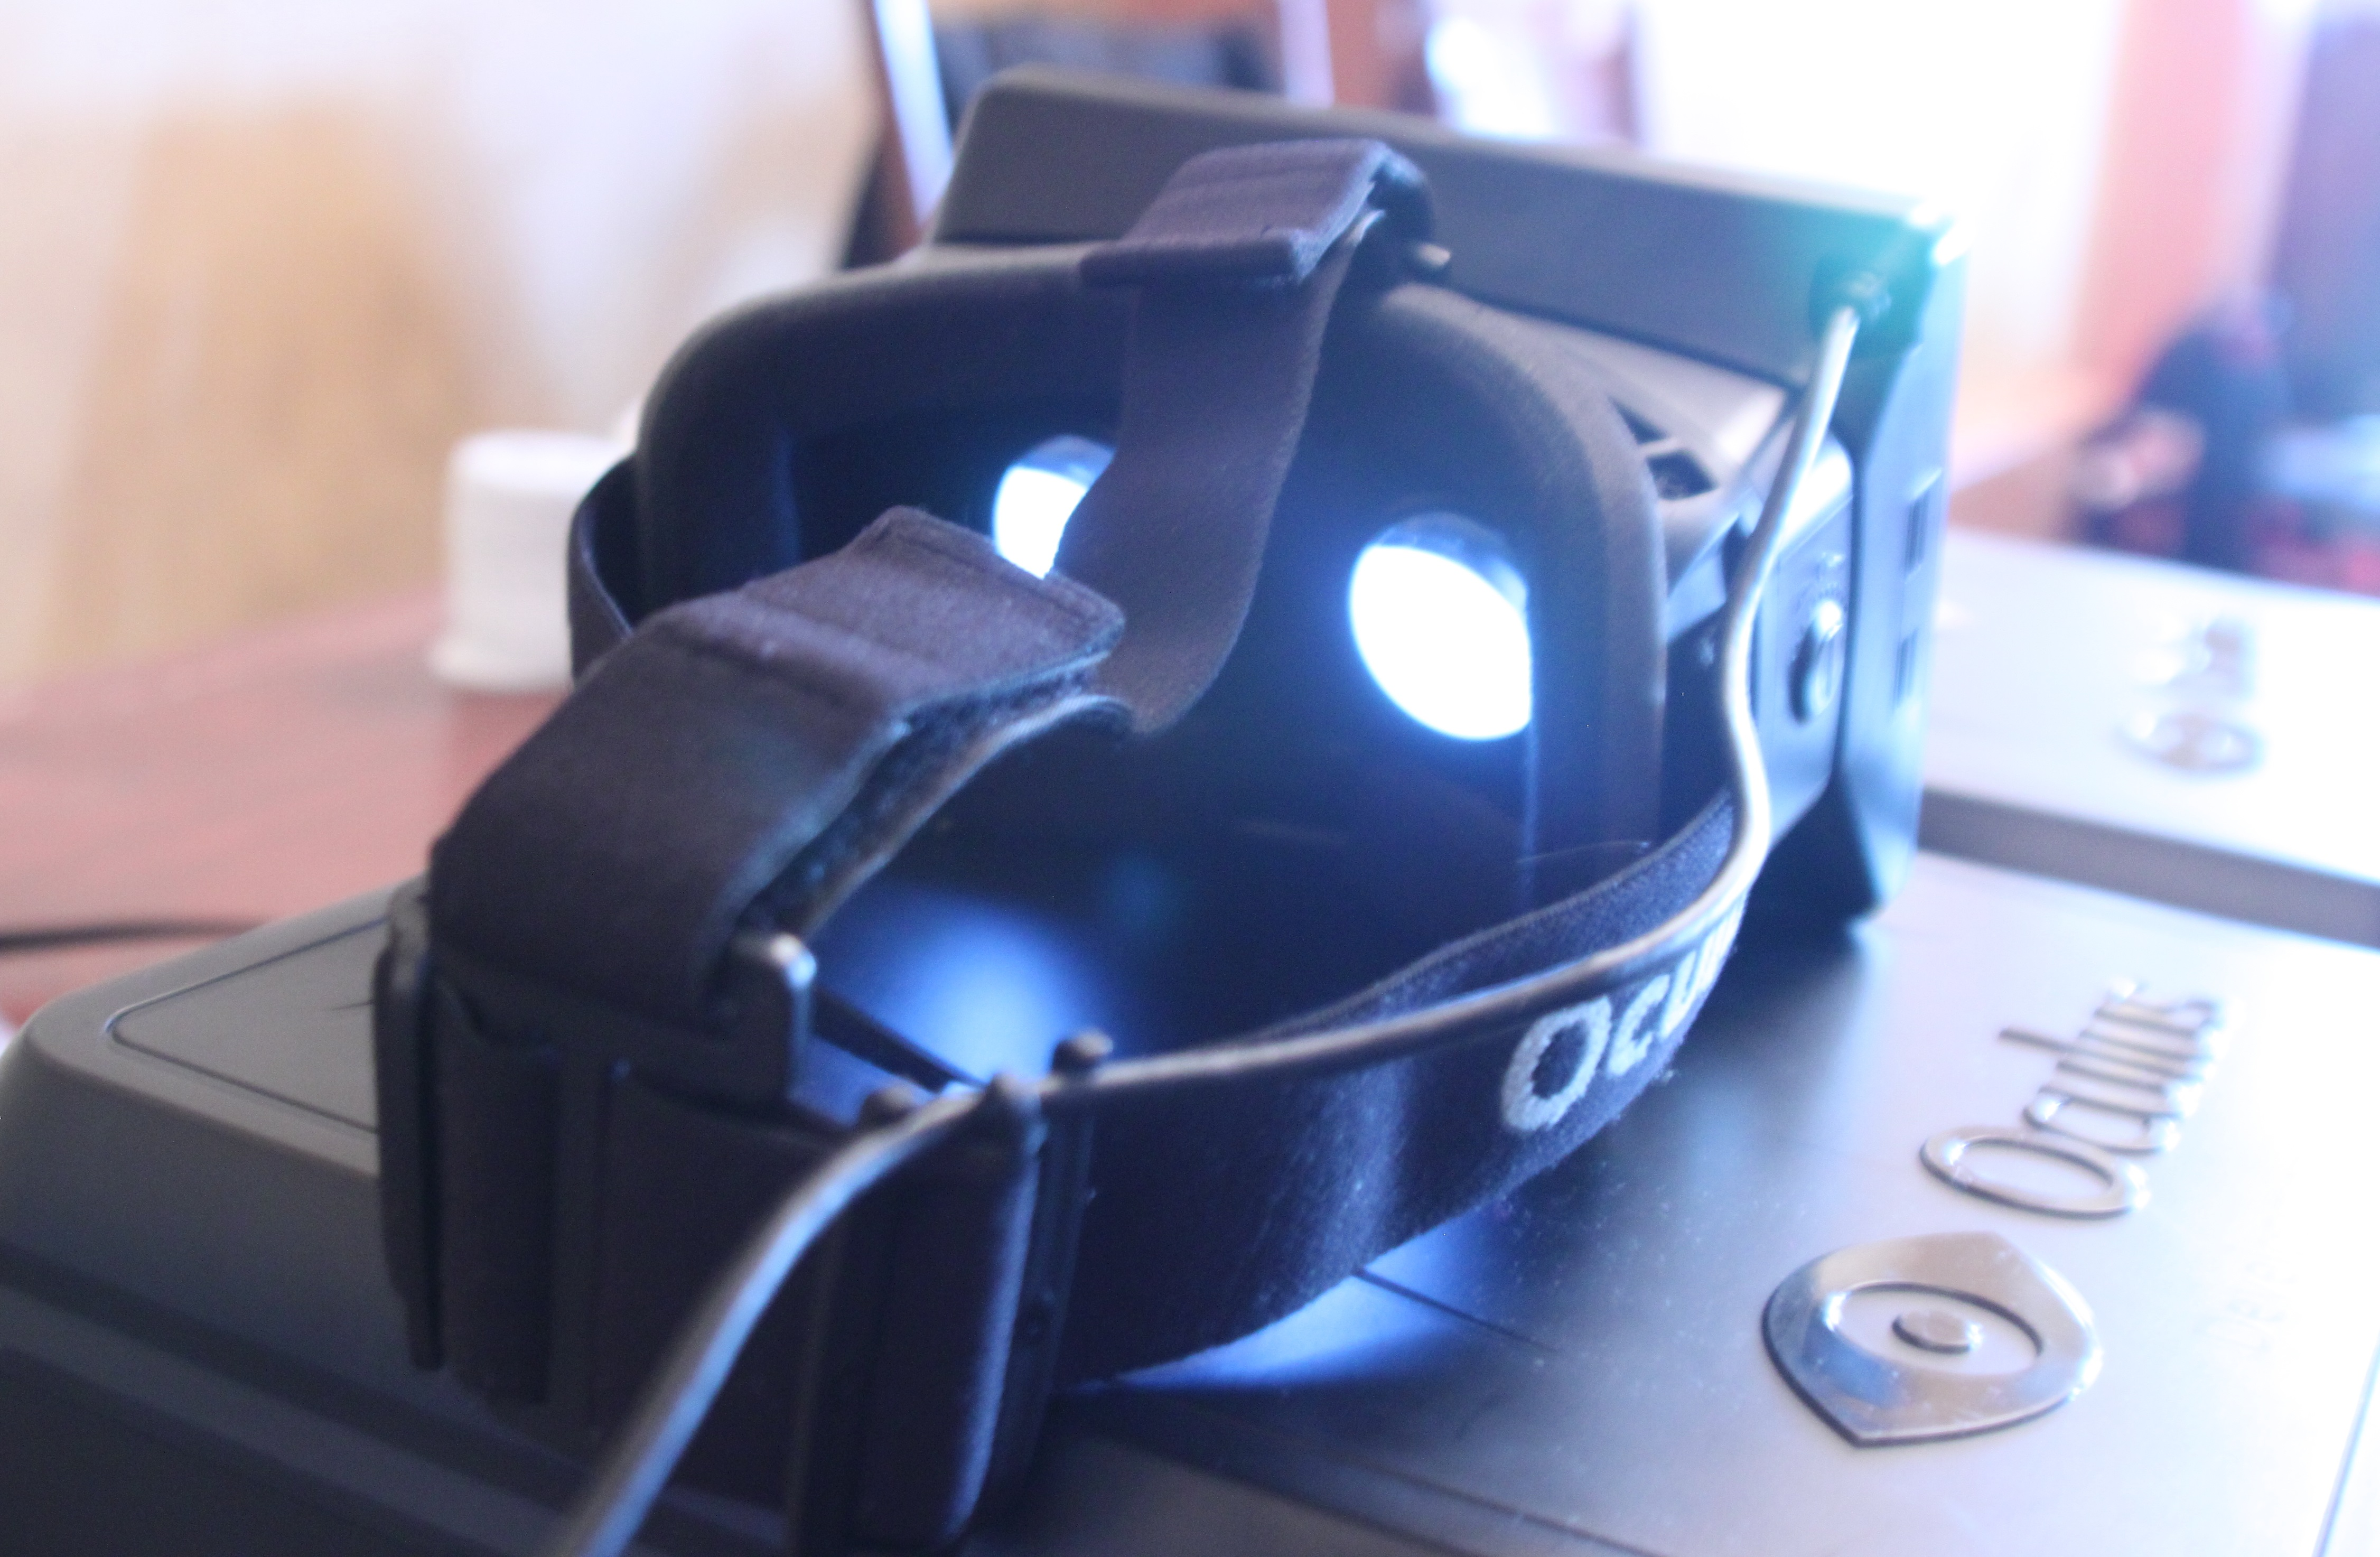 The final Oculus Rift development kit sitting on top of its included carrying case.